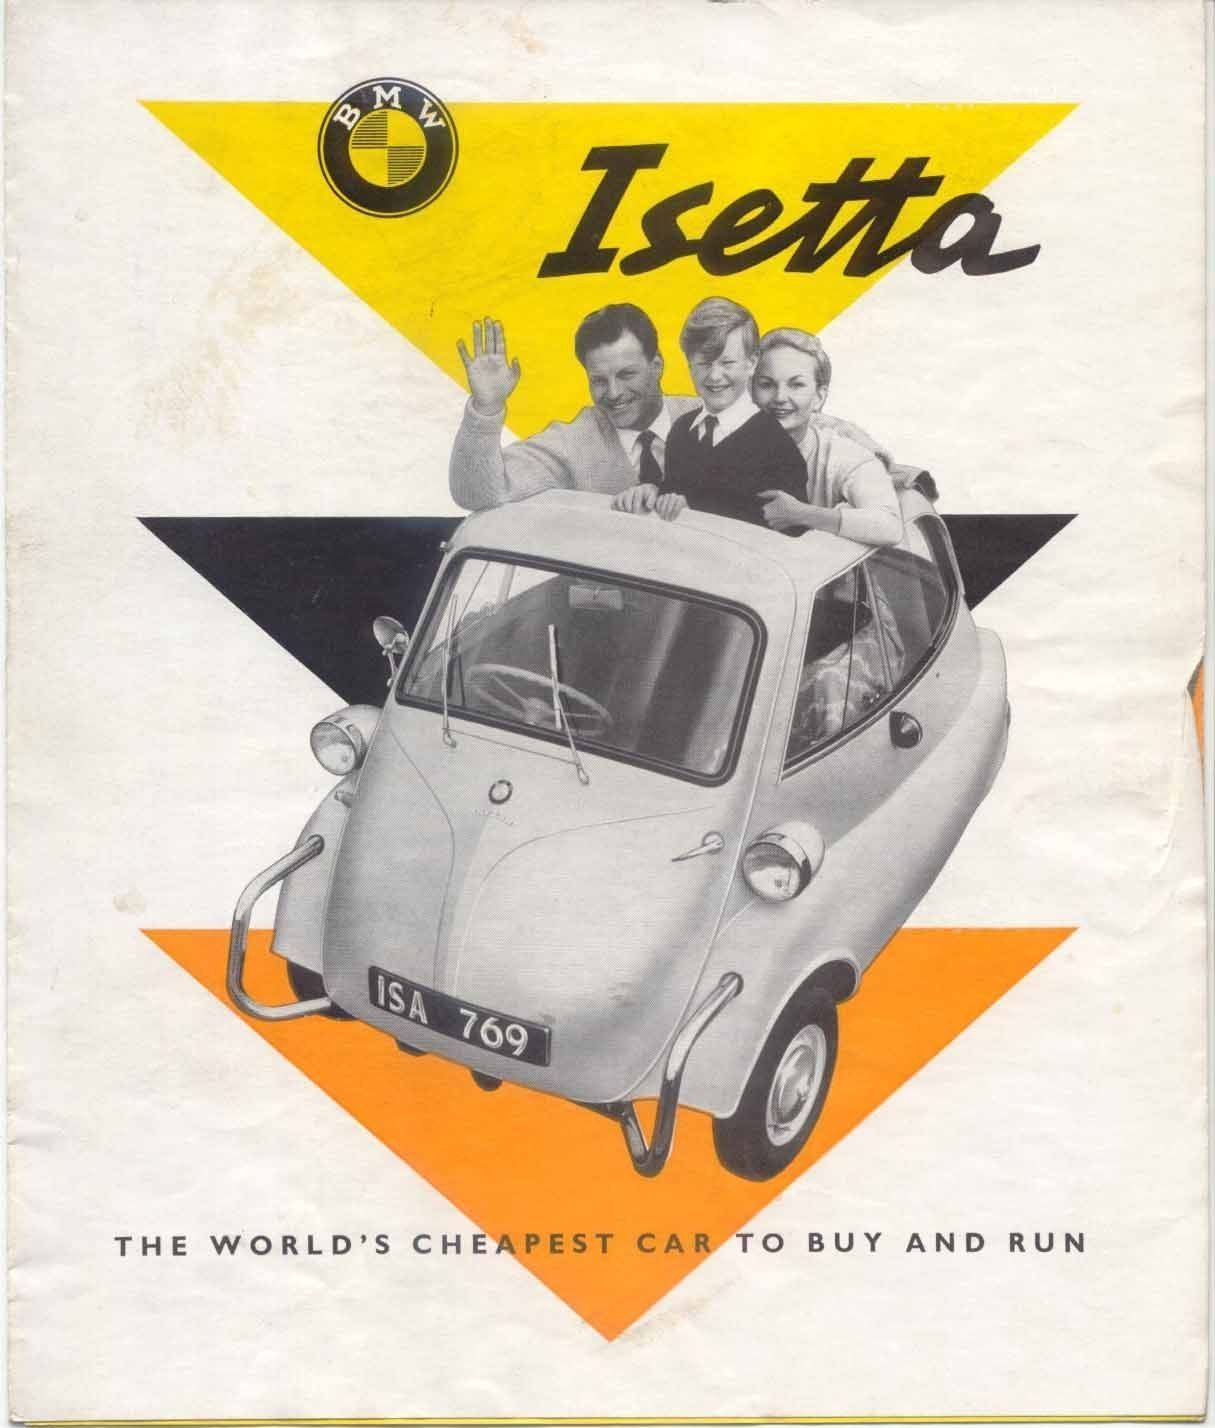 BMW Isetta Bubble Car 295cc Late 1950s Original UK Market Foldout